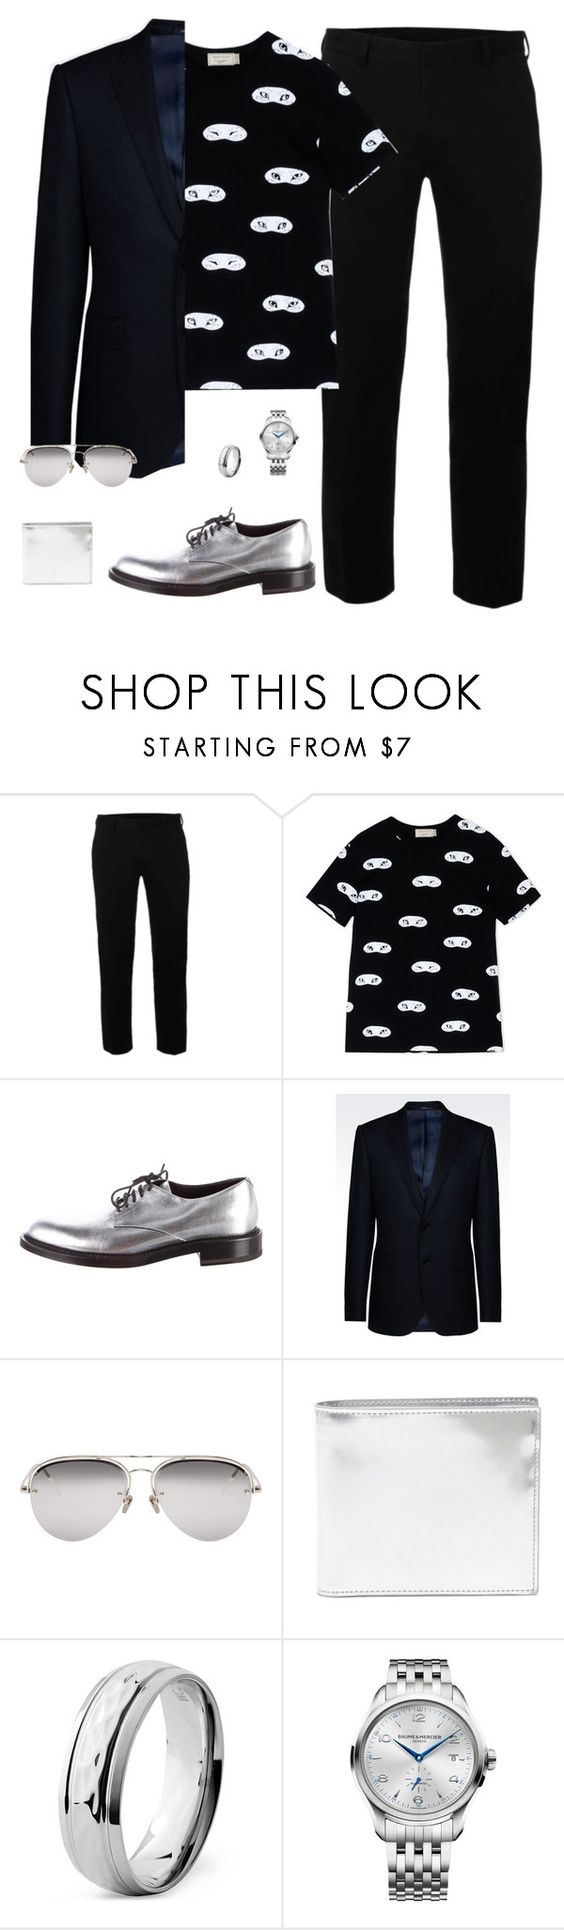 """ML23"" by xemrahv ❤ liked on Polyvore featuring Topman, Maison Kitsuné, Yves Saint Laurent, Armani Collezioni, Linda Farrow, Maison Margiela, West Coast Jewelry, Baume & Mercier, men's fashion and menswear"